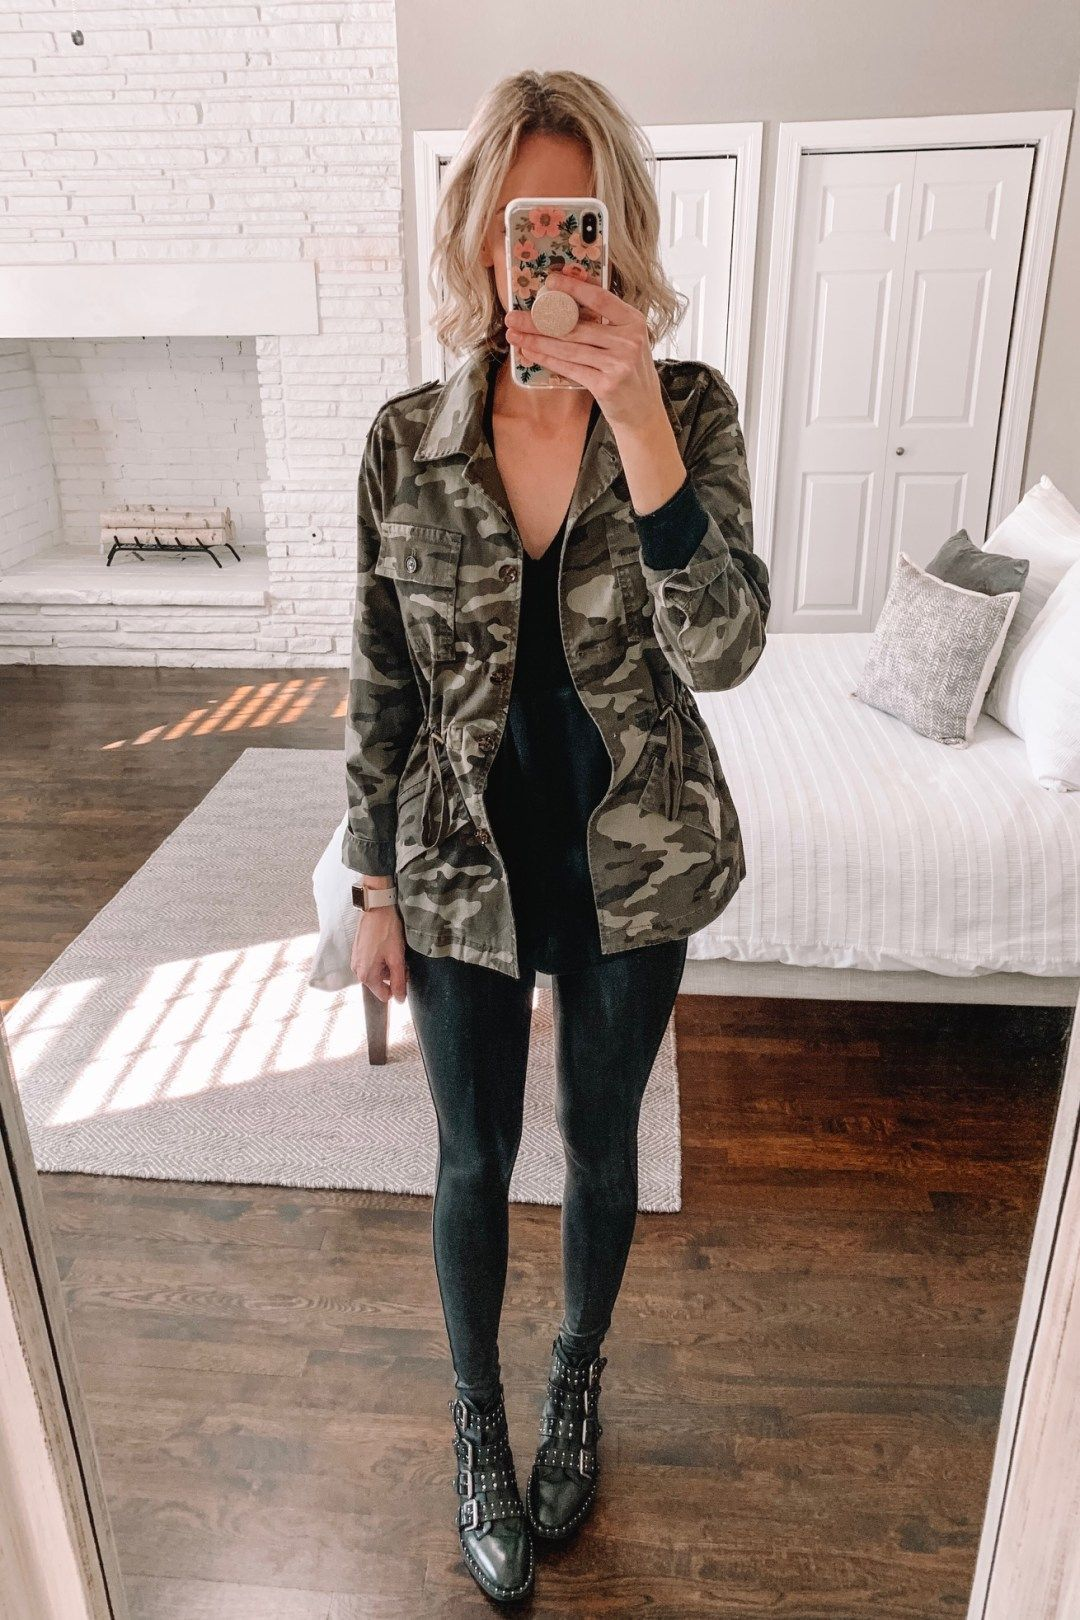 e4c1875df220b How to wear leggings casually faux leather leggings with a long layering  top camo jacket and